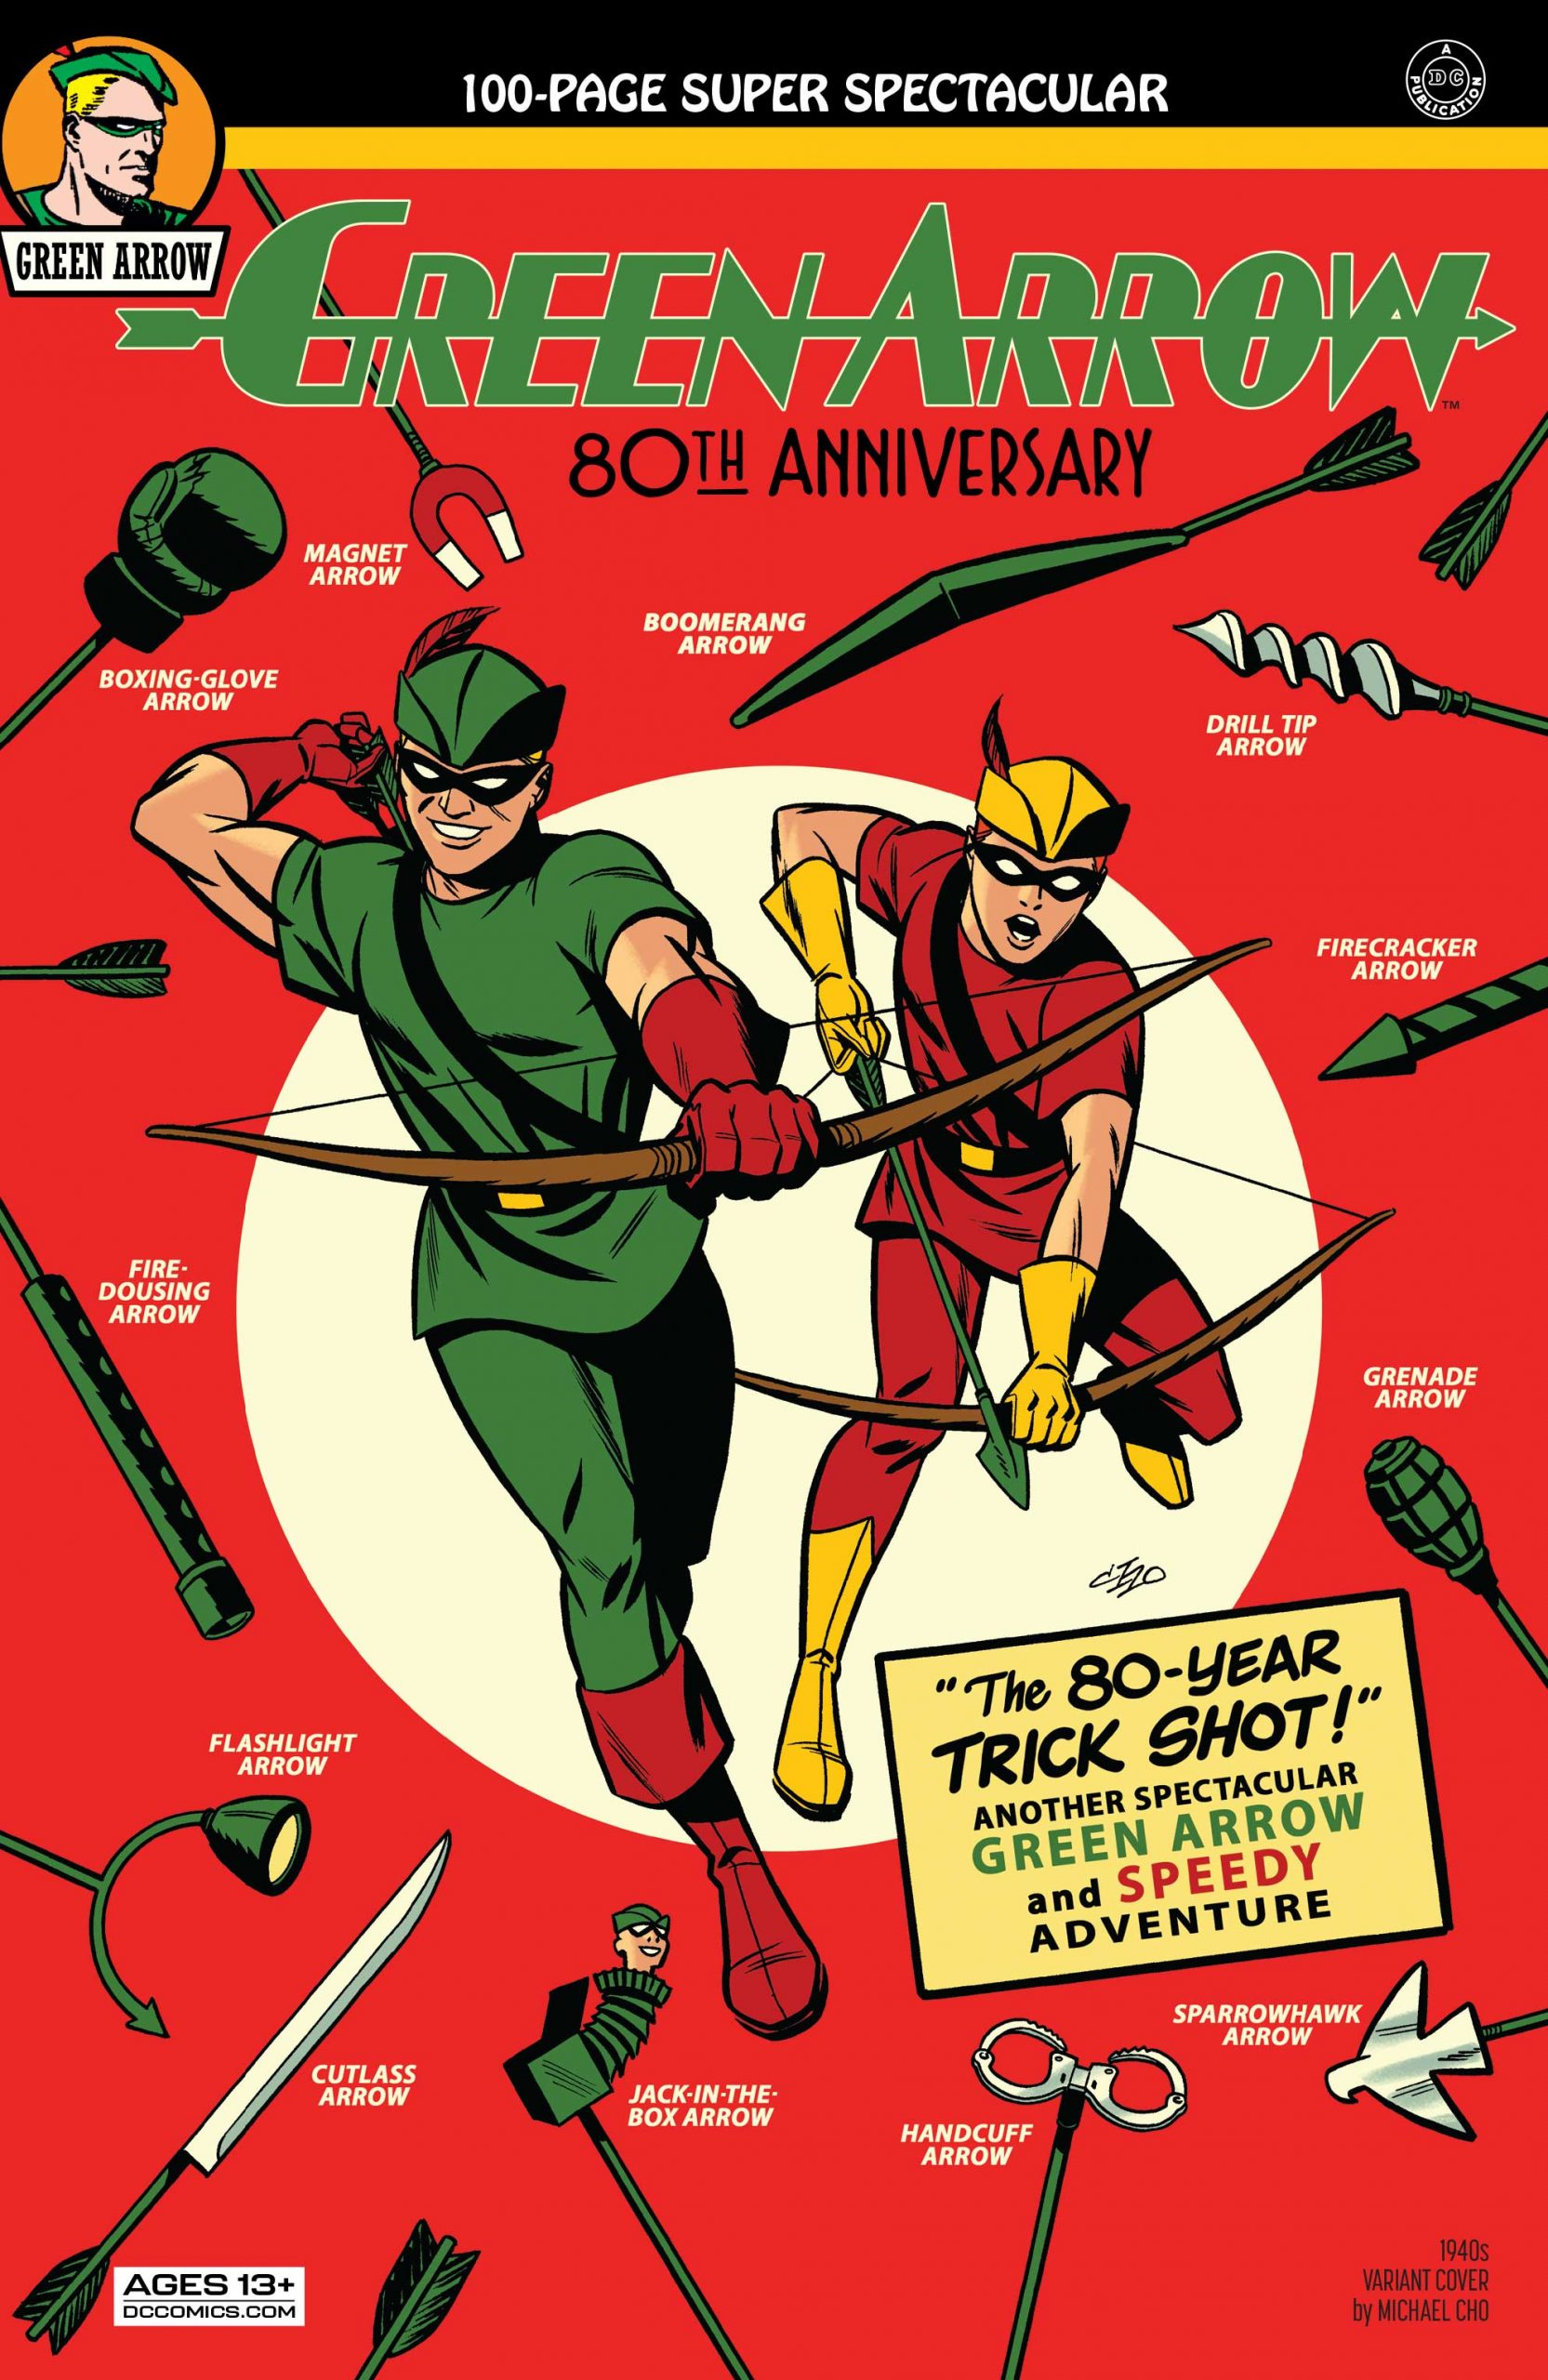 Green-Arrow-80th-Anniversary-100-Page-Super-Spectacular-1-2-scaled-1 Green-Arrow-80th-Anniversary-100-Page-Super-Spectacular-1-2-scaled-1